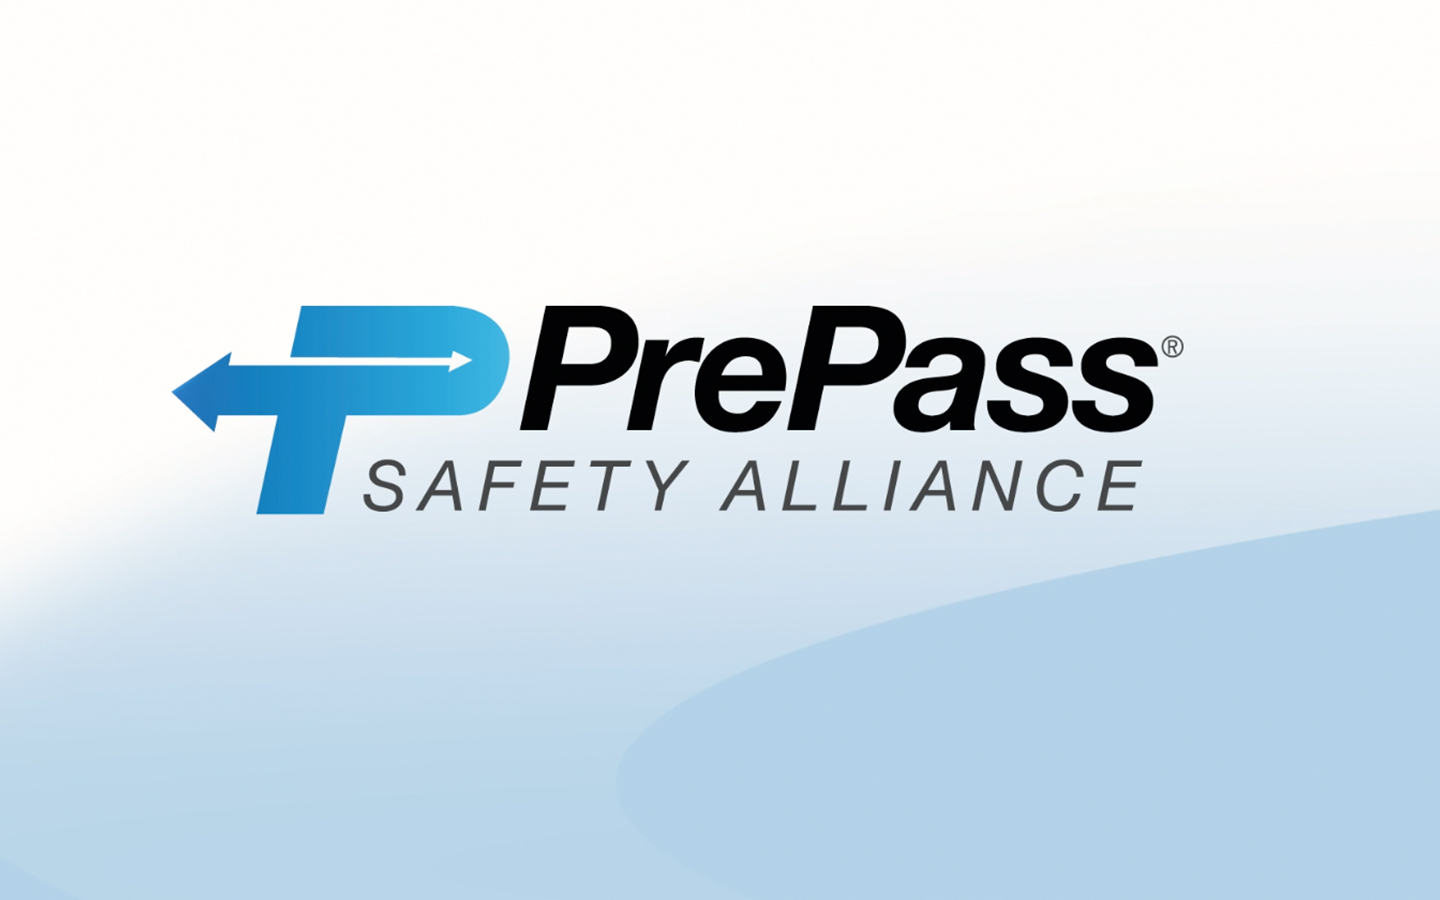 PrePass Safety Alliance Informational Video